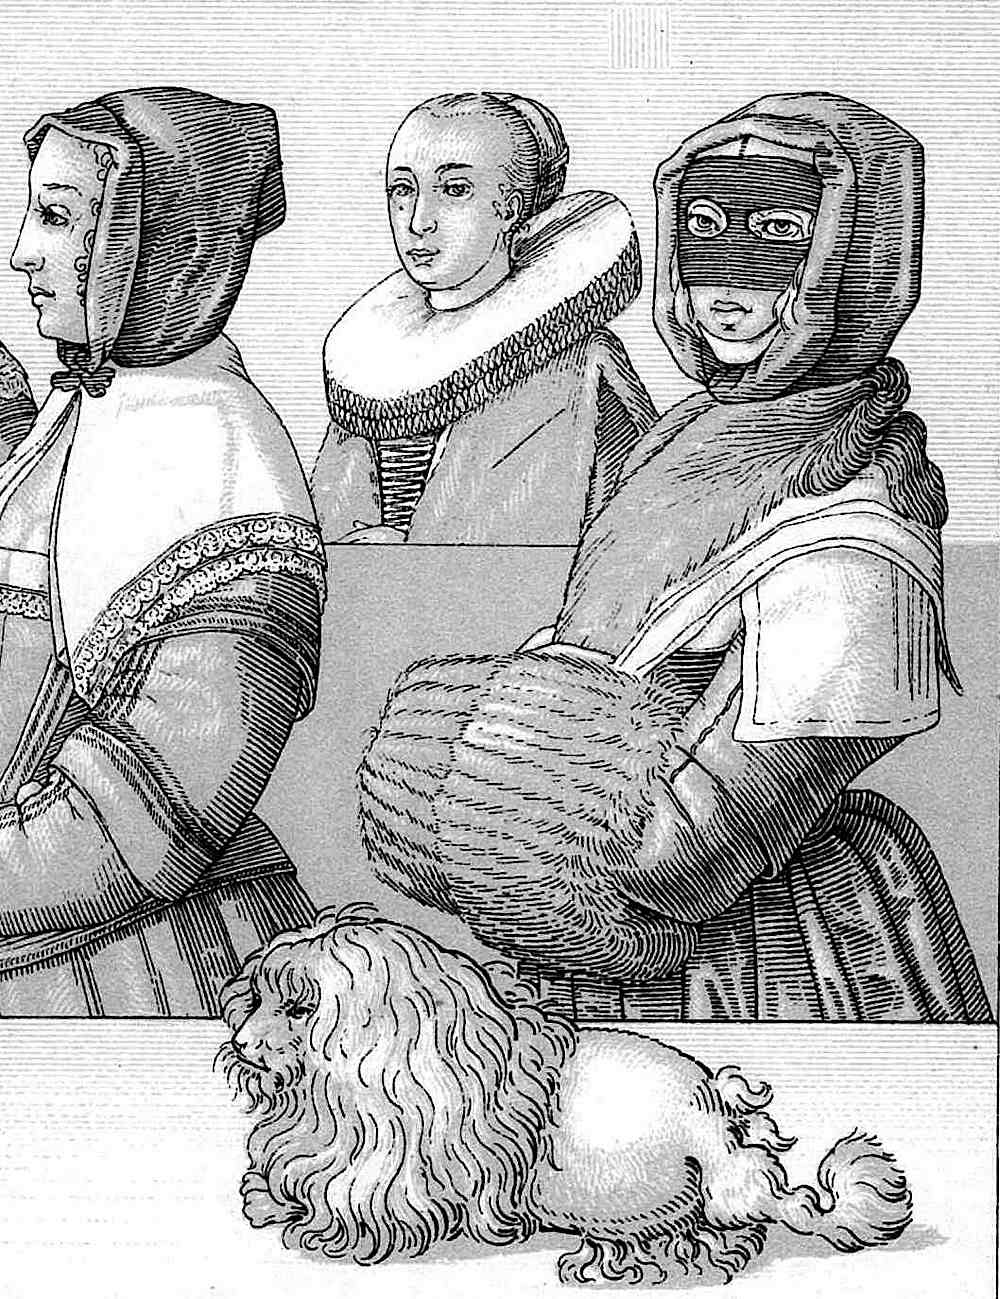 face-covering fashion in 1600s France, with an early poodle